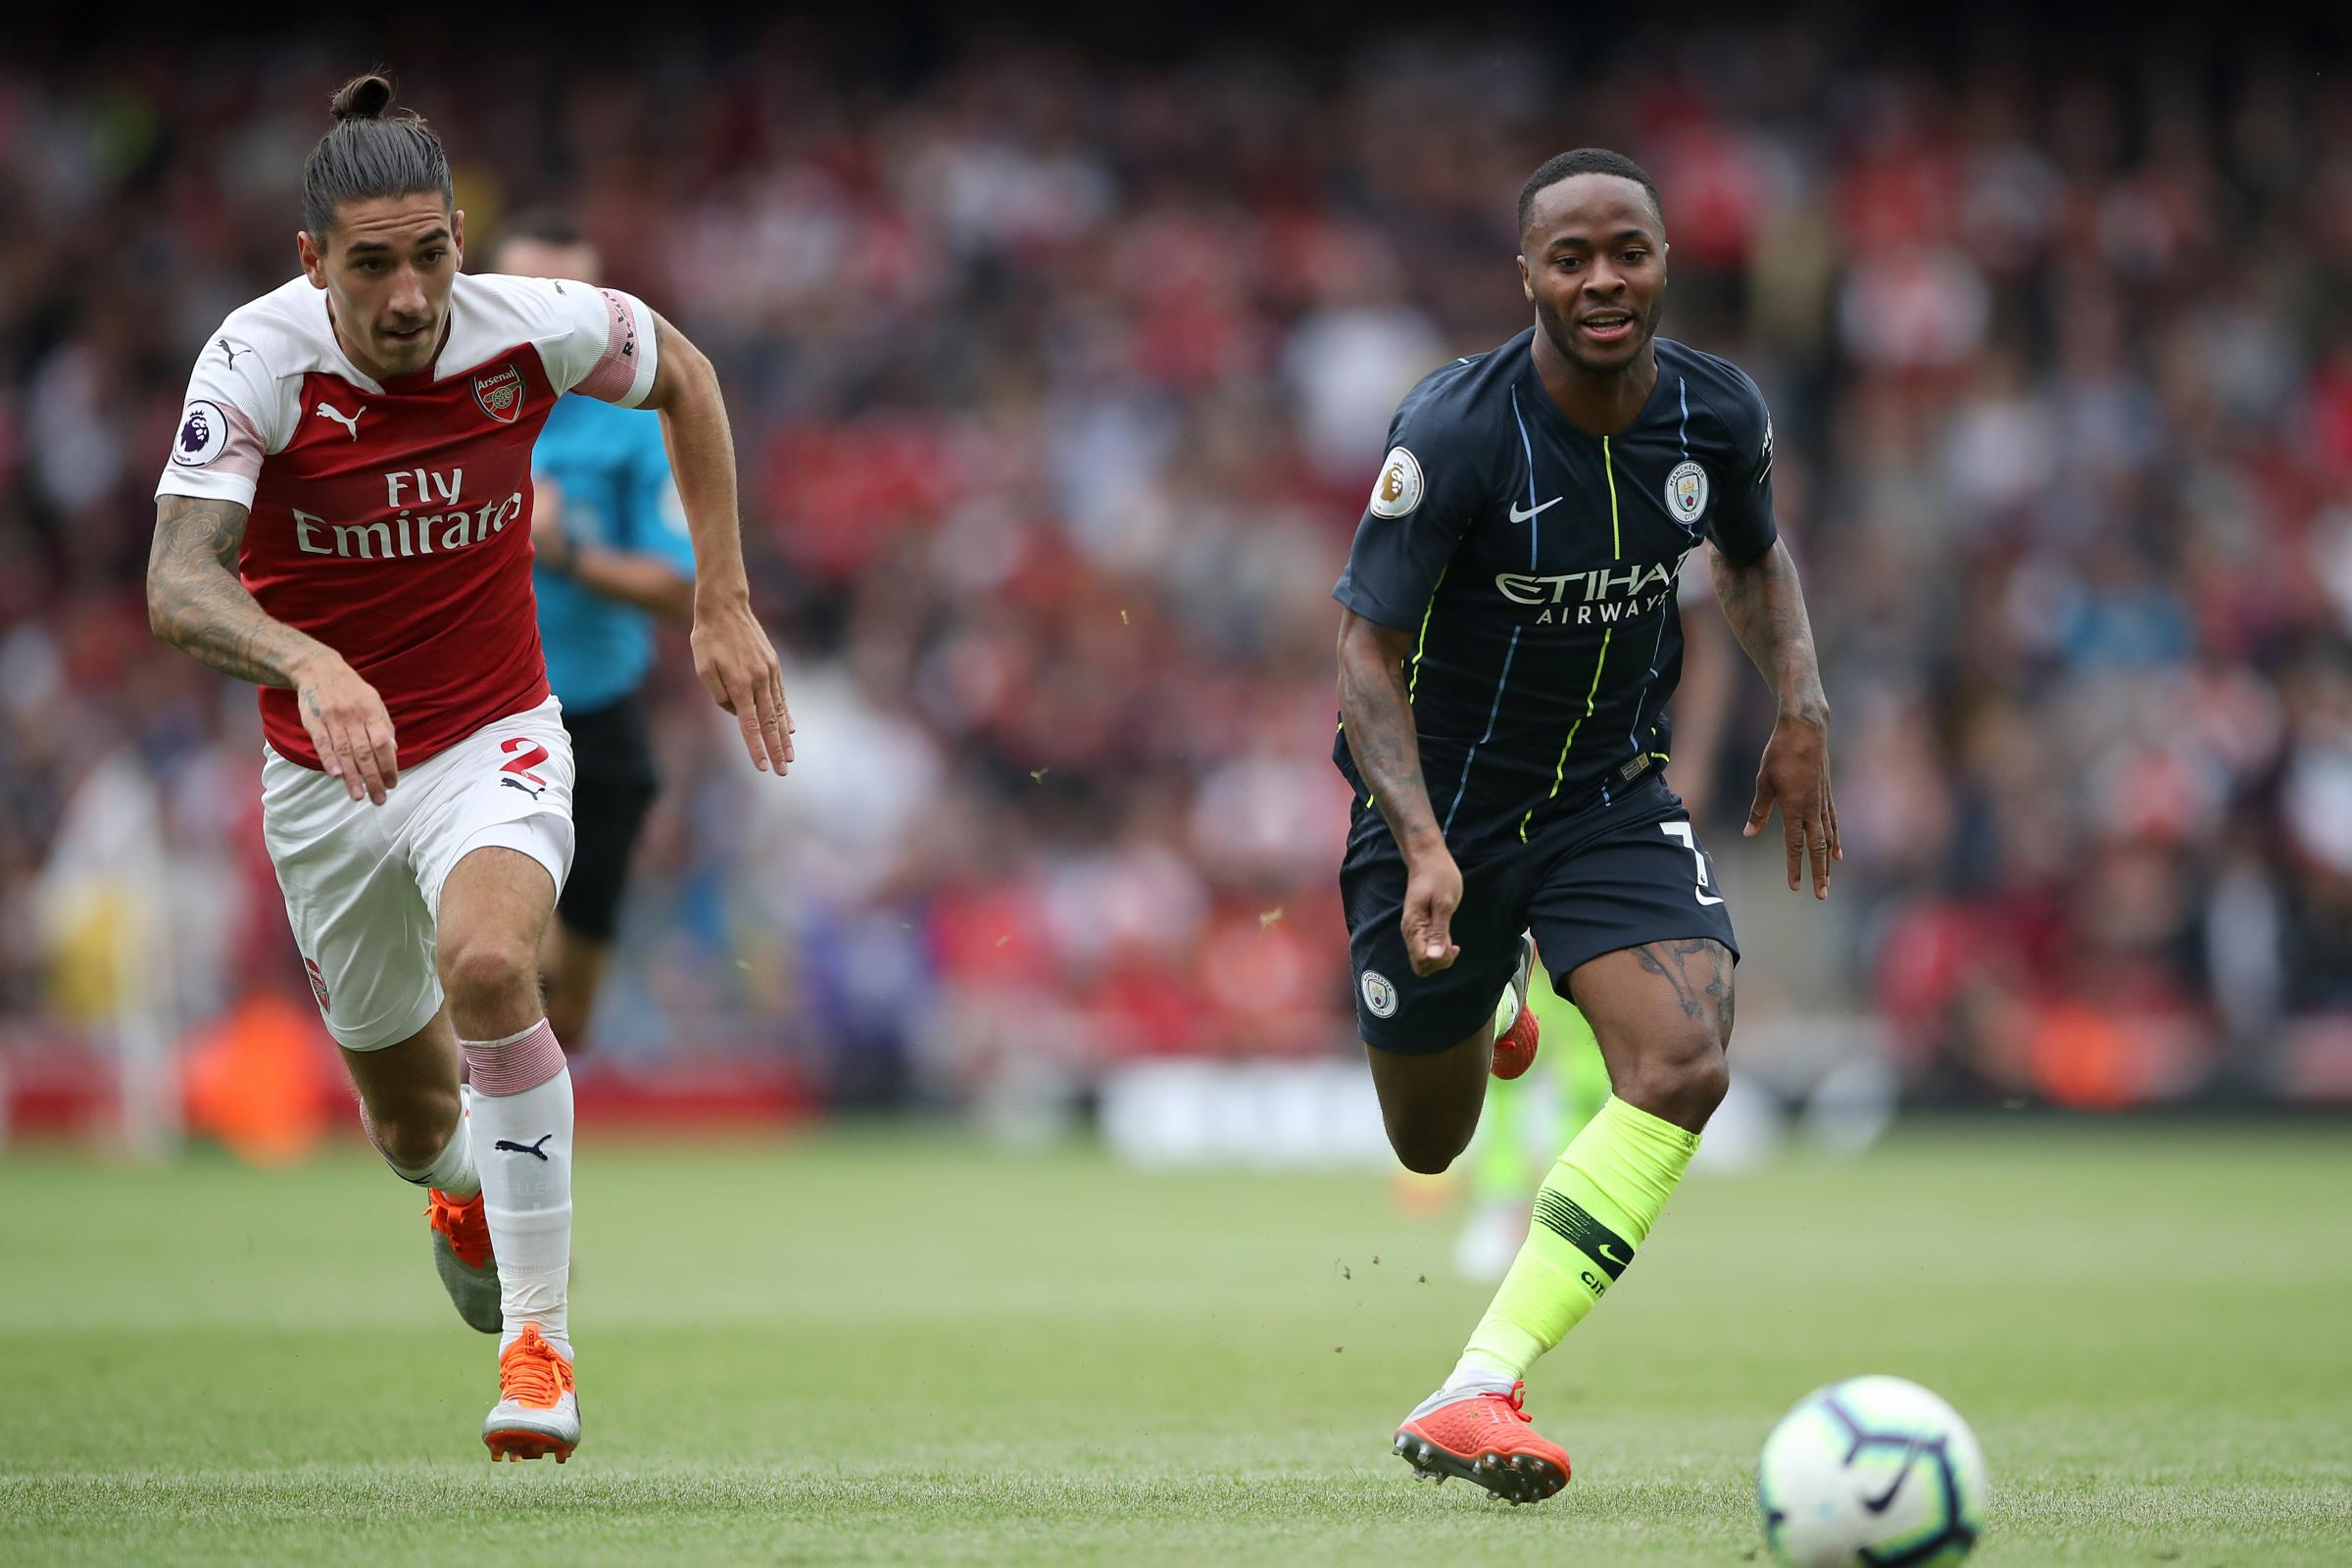 EPL: Stylish Manchester City spoil Emery's Arsenal bow